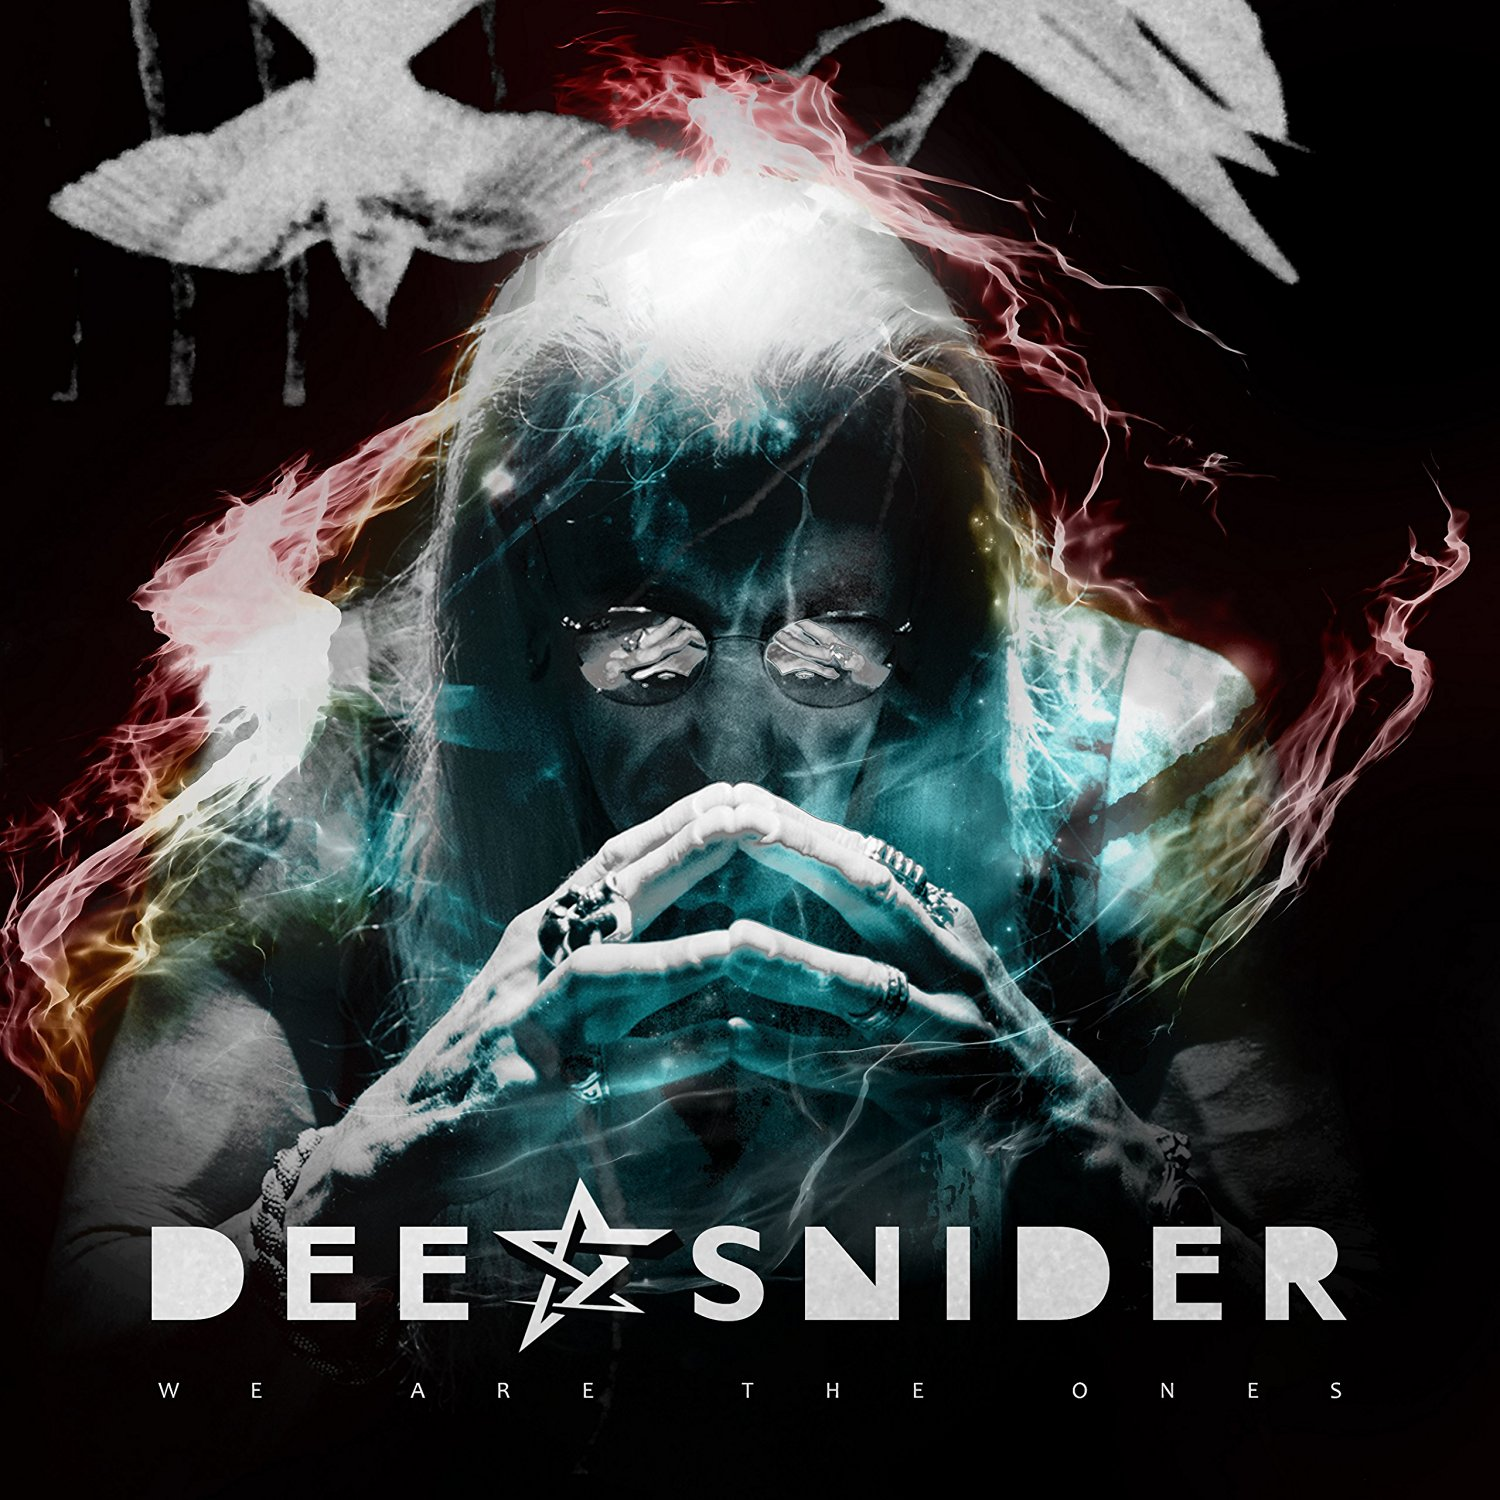 Dee Snider - We Are The Ones - Album Cover